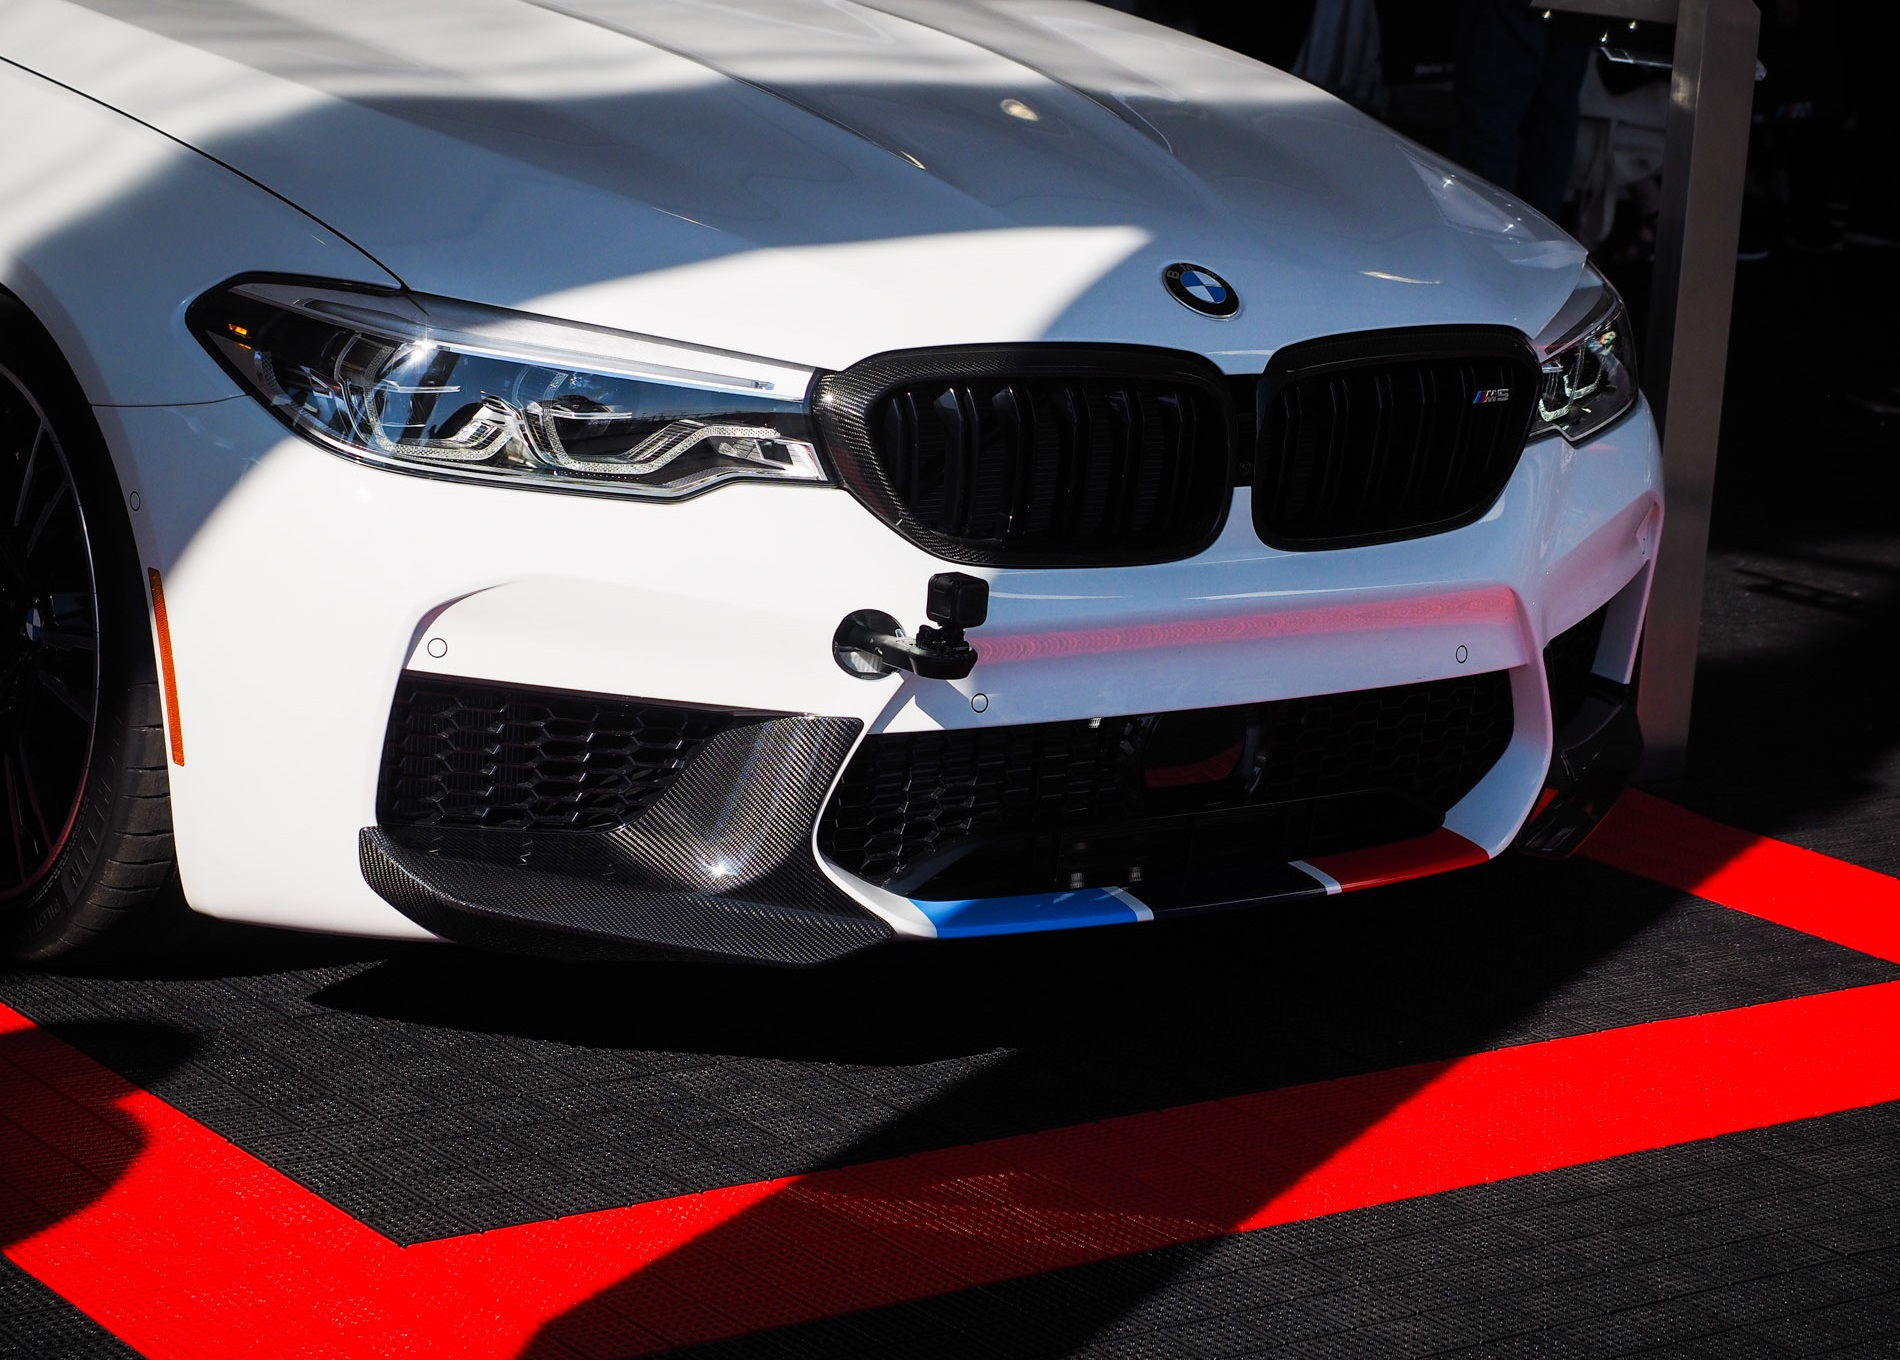 BMW M5 F90 with M Performance Parts